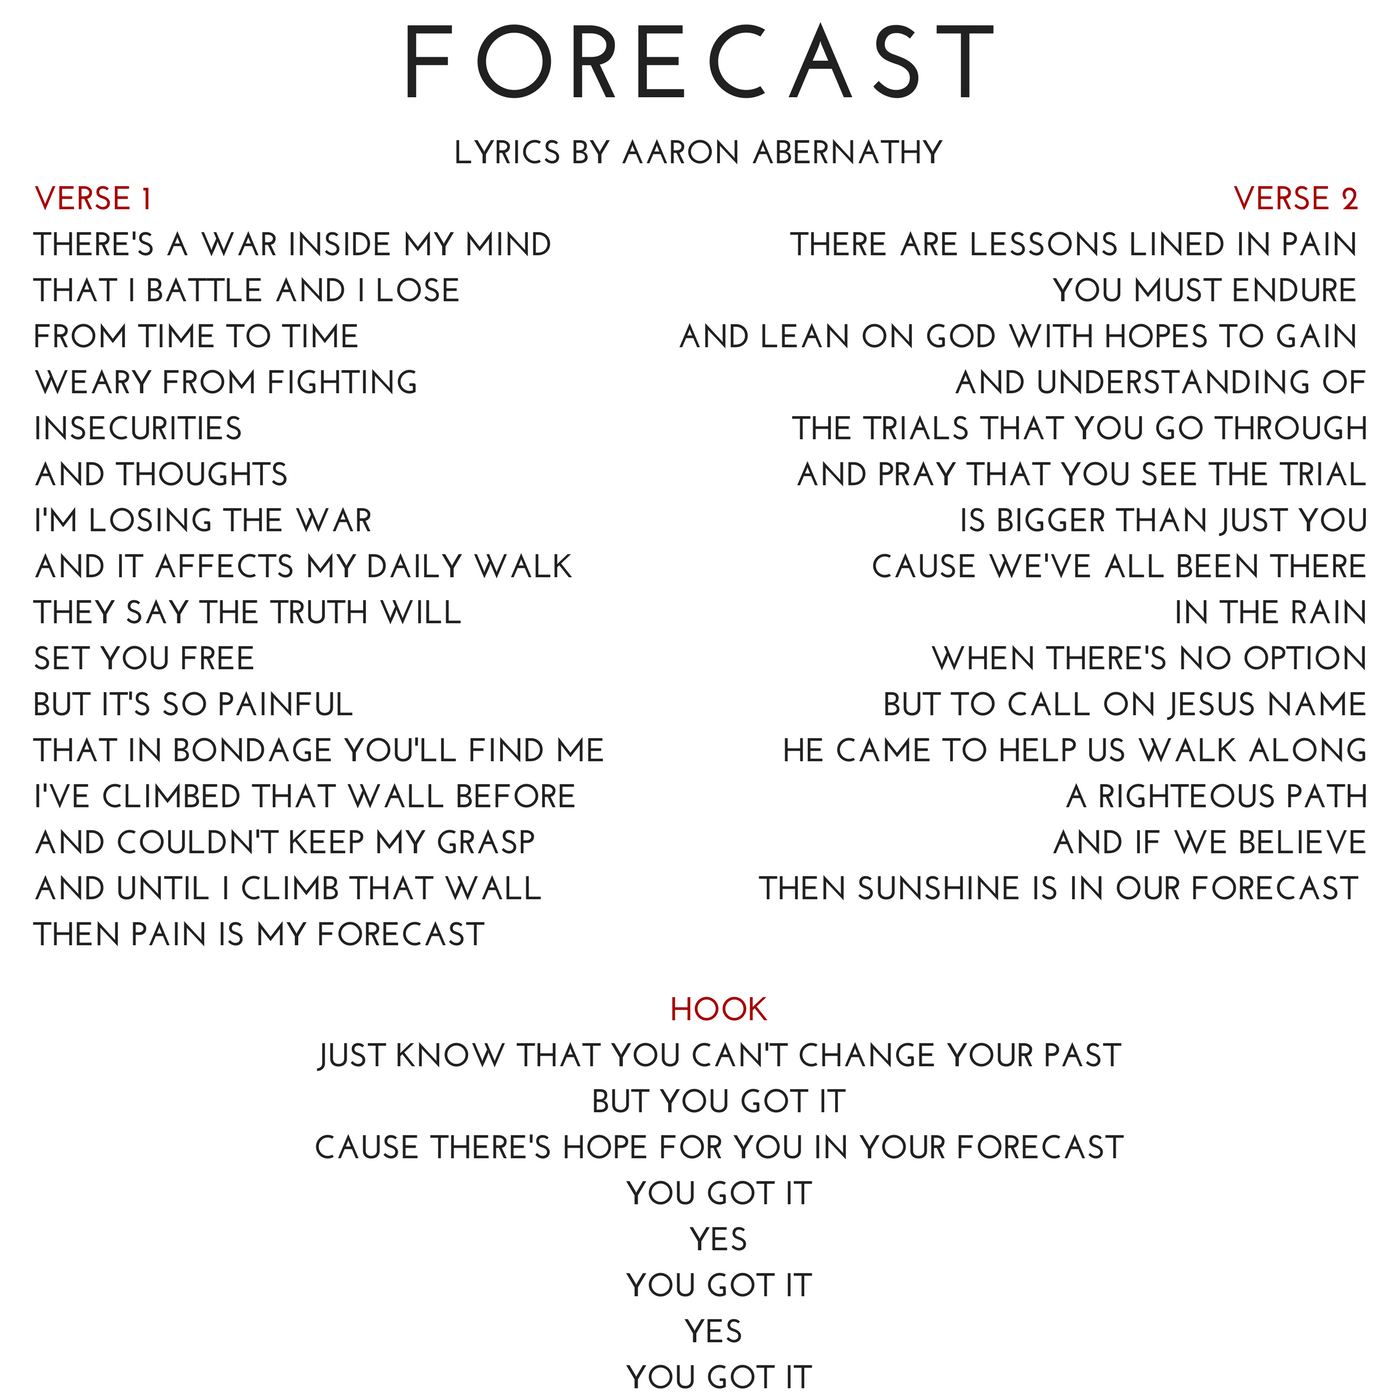 08 FORECAST Lyrics by Aaron Abernathy.png